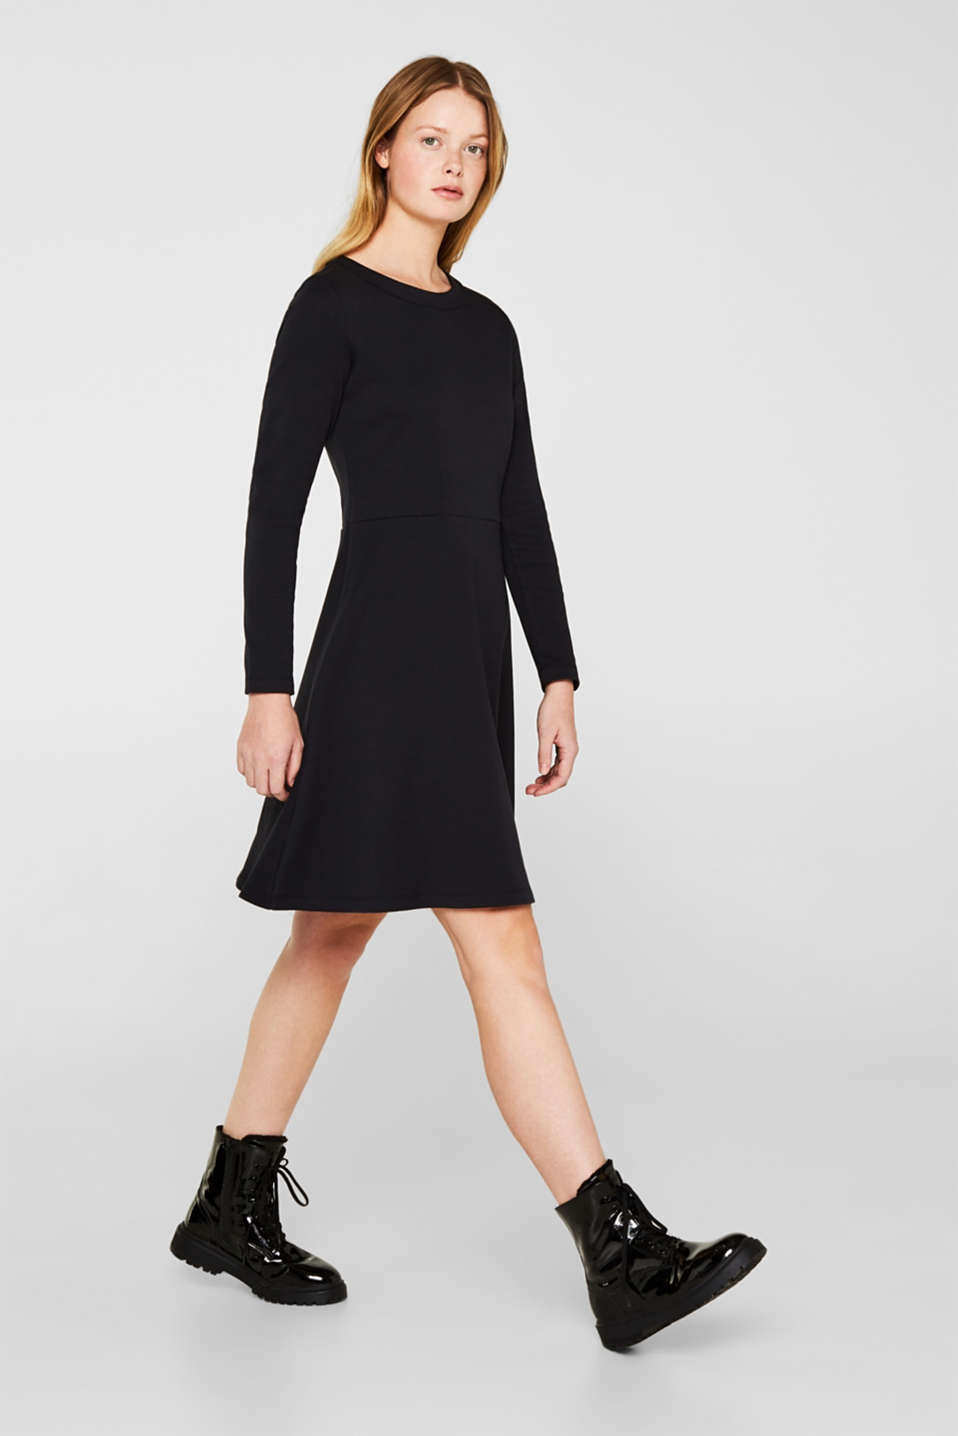 Textured stretch jersey dress, BLACK, detail image number 5